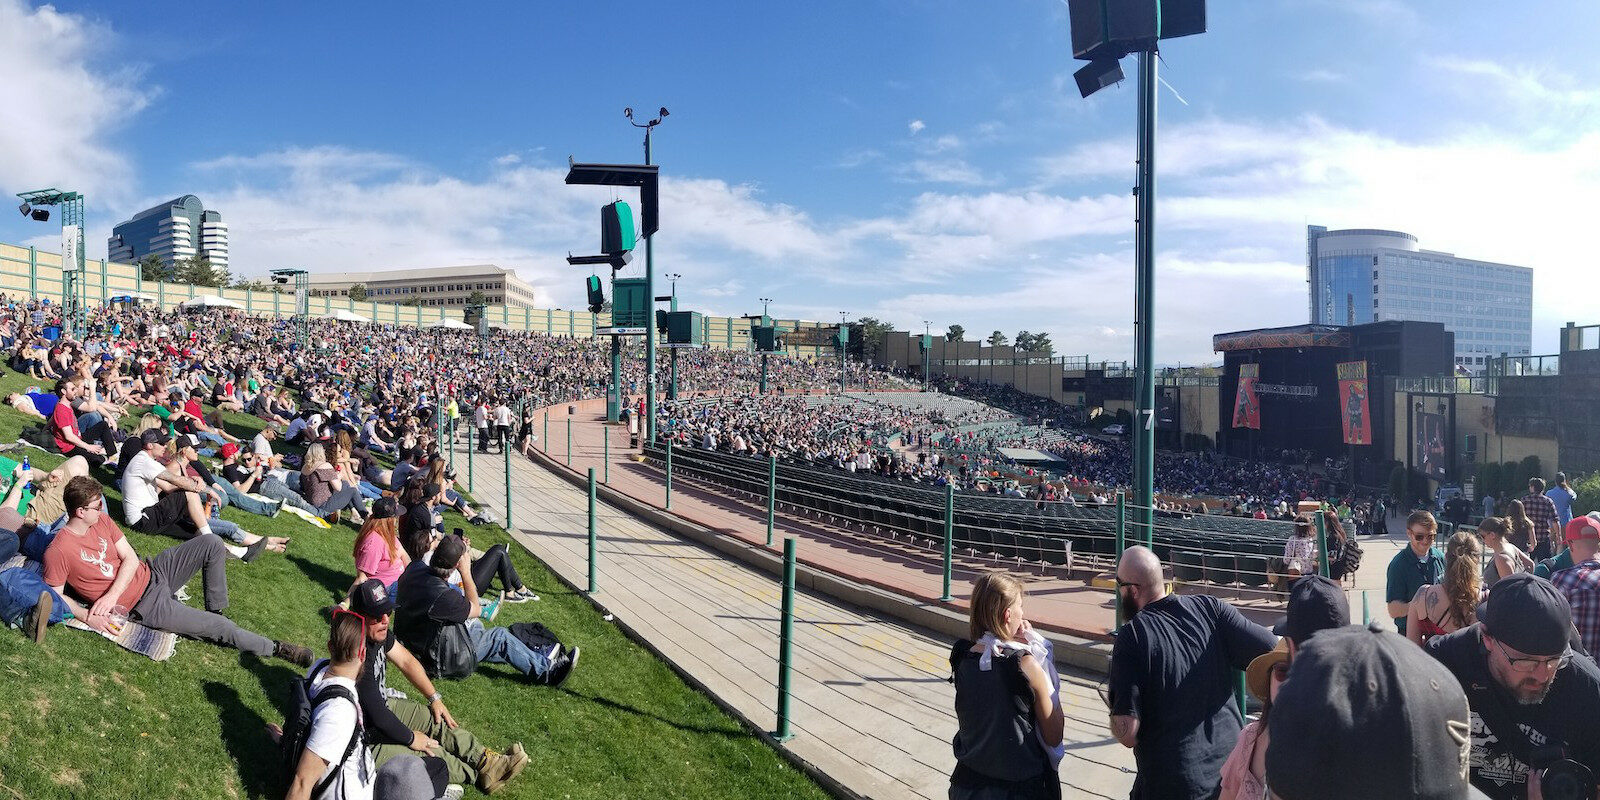 Image of the crowd at Fiddler's Green Amphitheatre in Greenwood, Colorado